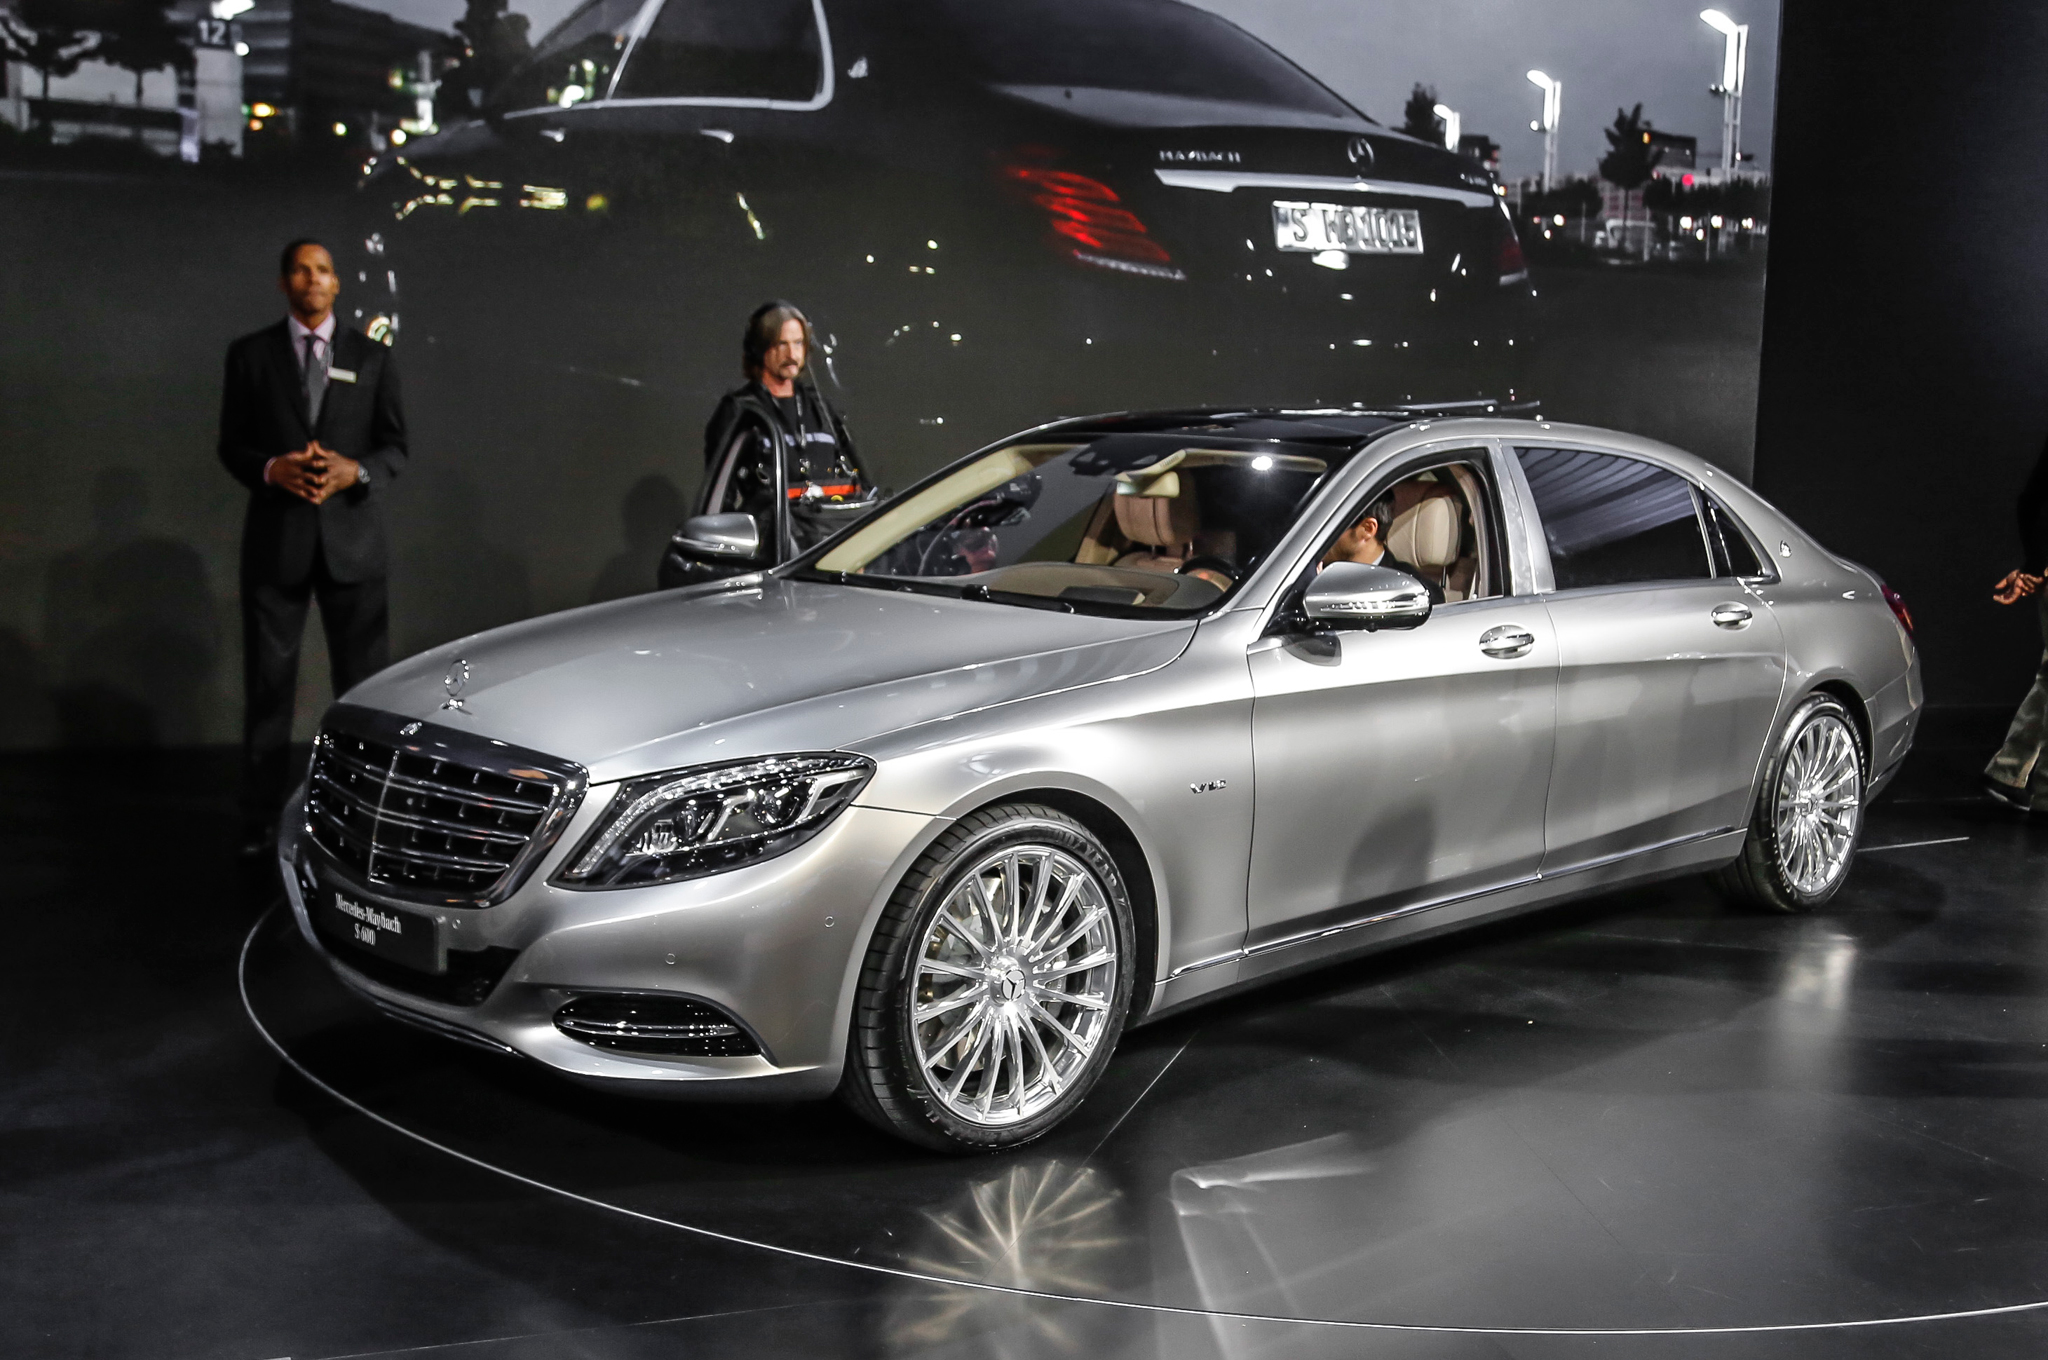 7 things the 2016 mercedes-maybach s600 has that the s-class doesn't